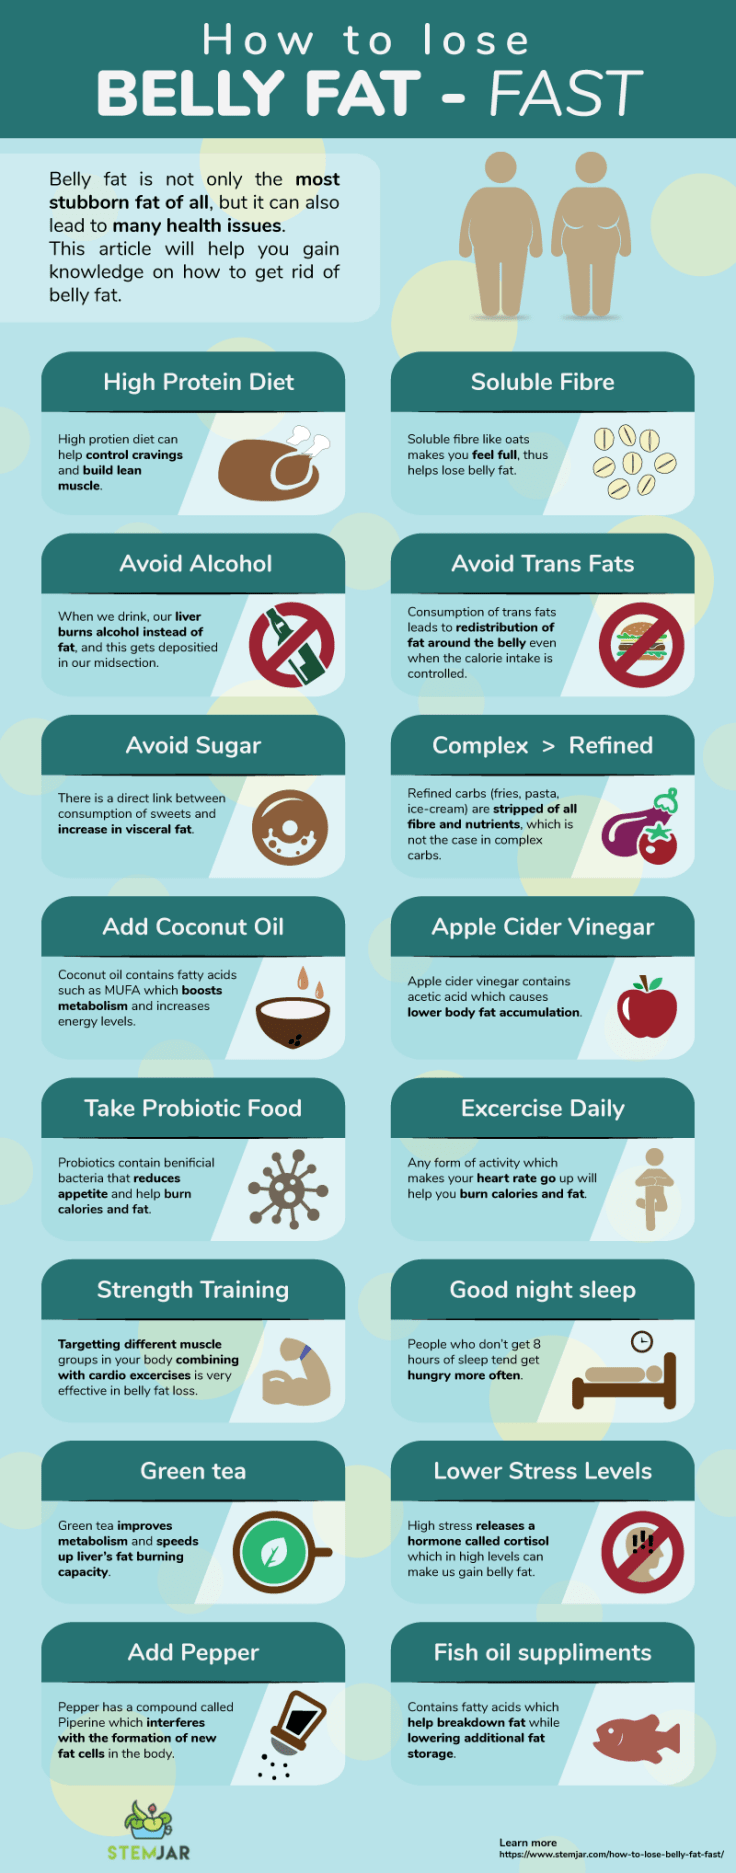 How To Lose Belly Fat Fast - Infographic